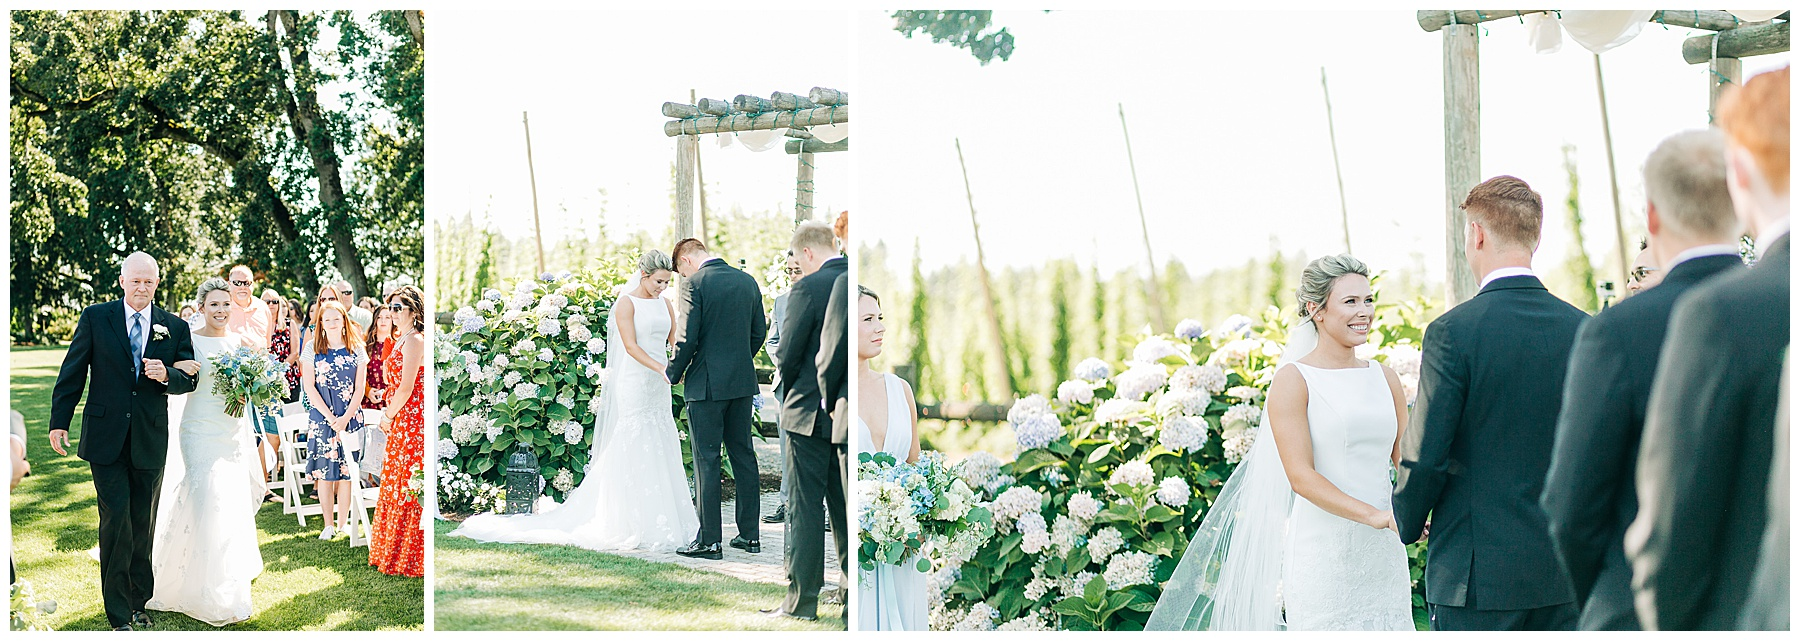 Julia & Ben Fine Art Wedding Photographer Wilmes Hop Farm Aurora Oregon, Fine Art Wedding Photographer Portland, Oregon